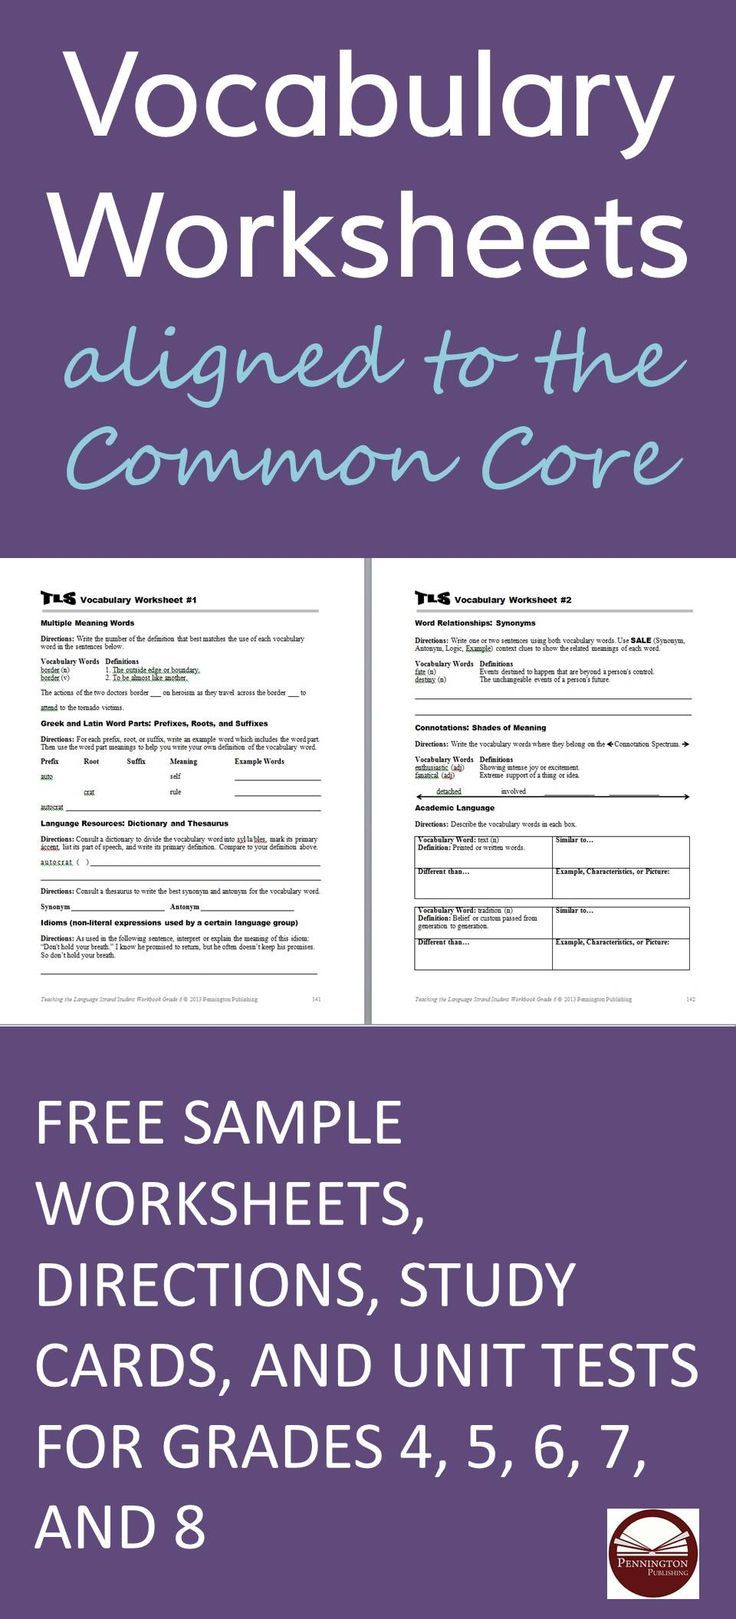 Click The Link To Get The Worksheets And Resource Downloads From The